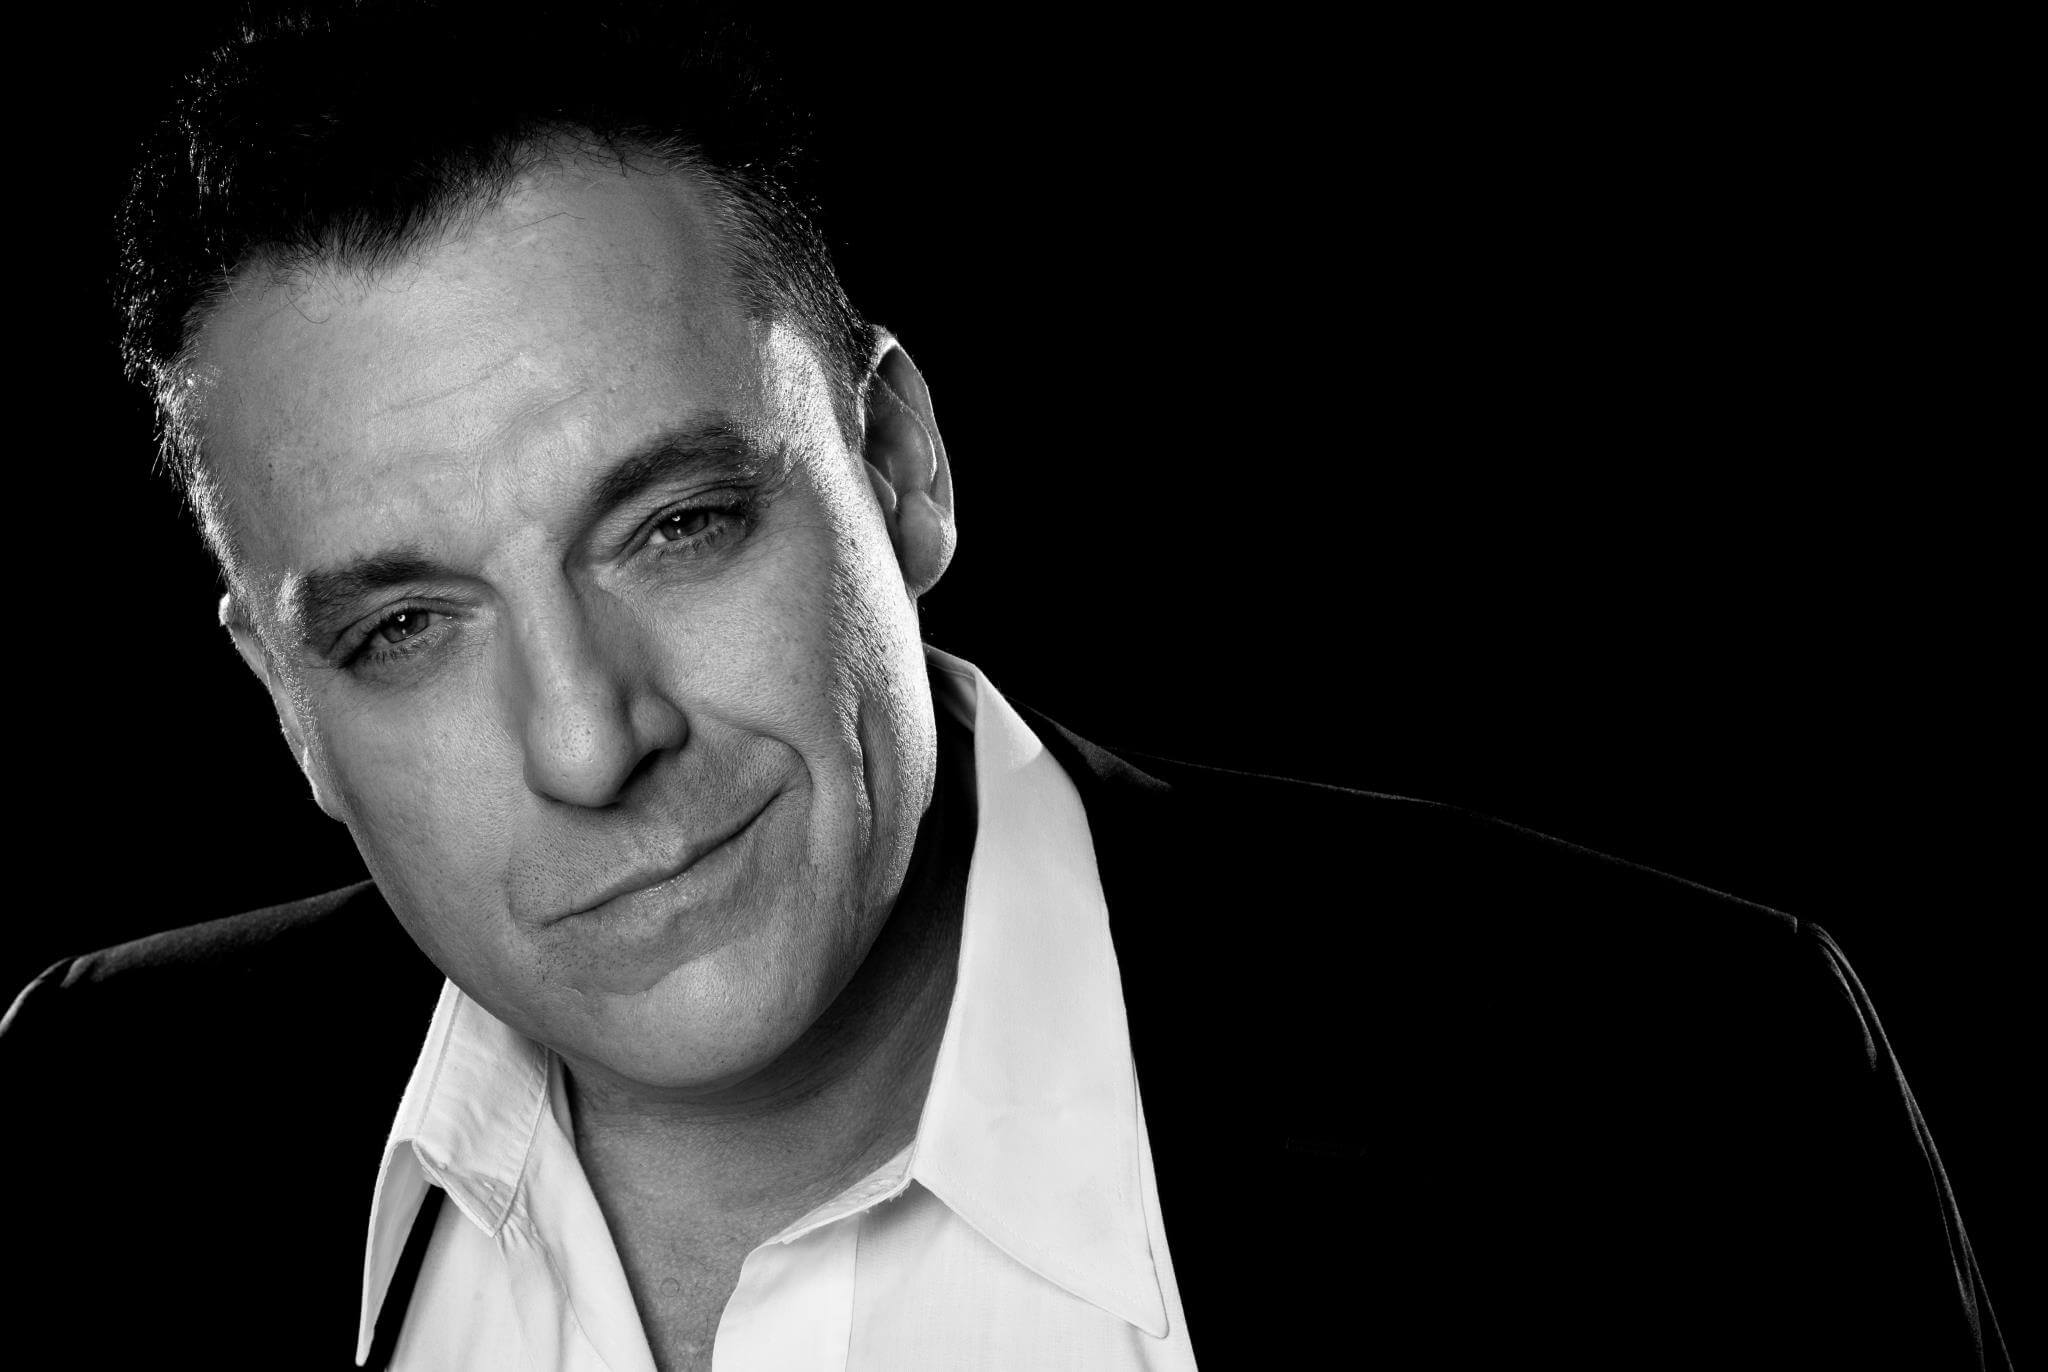 tom sizemore 1 - Tom Sizemore Set to Open The Door for Global Genesis Group